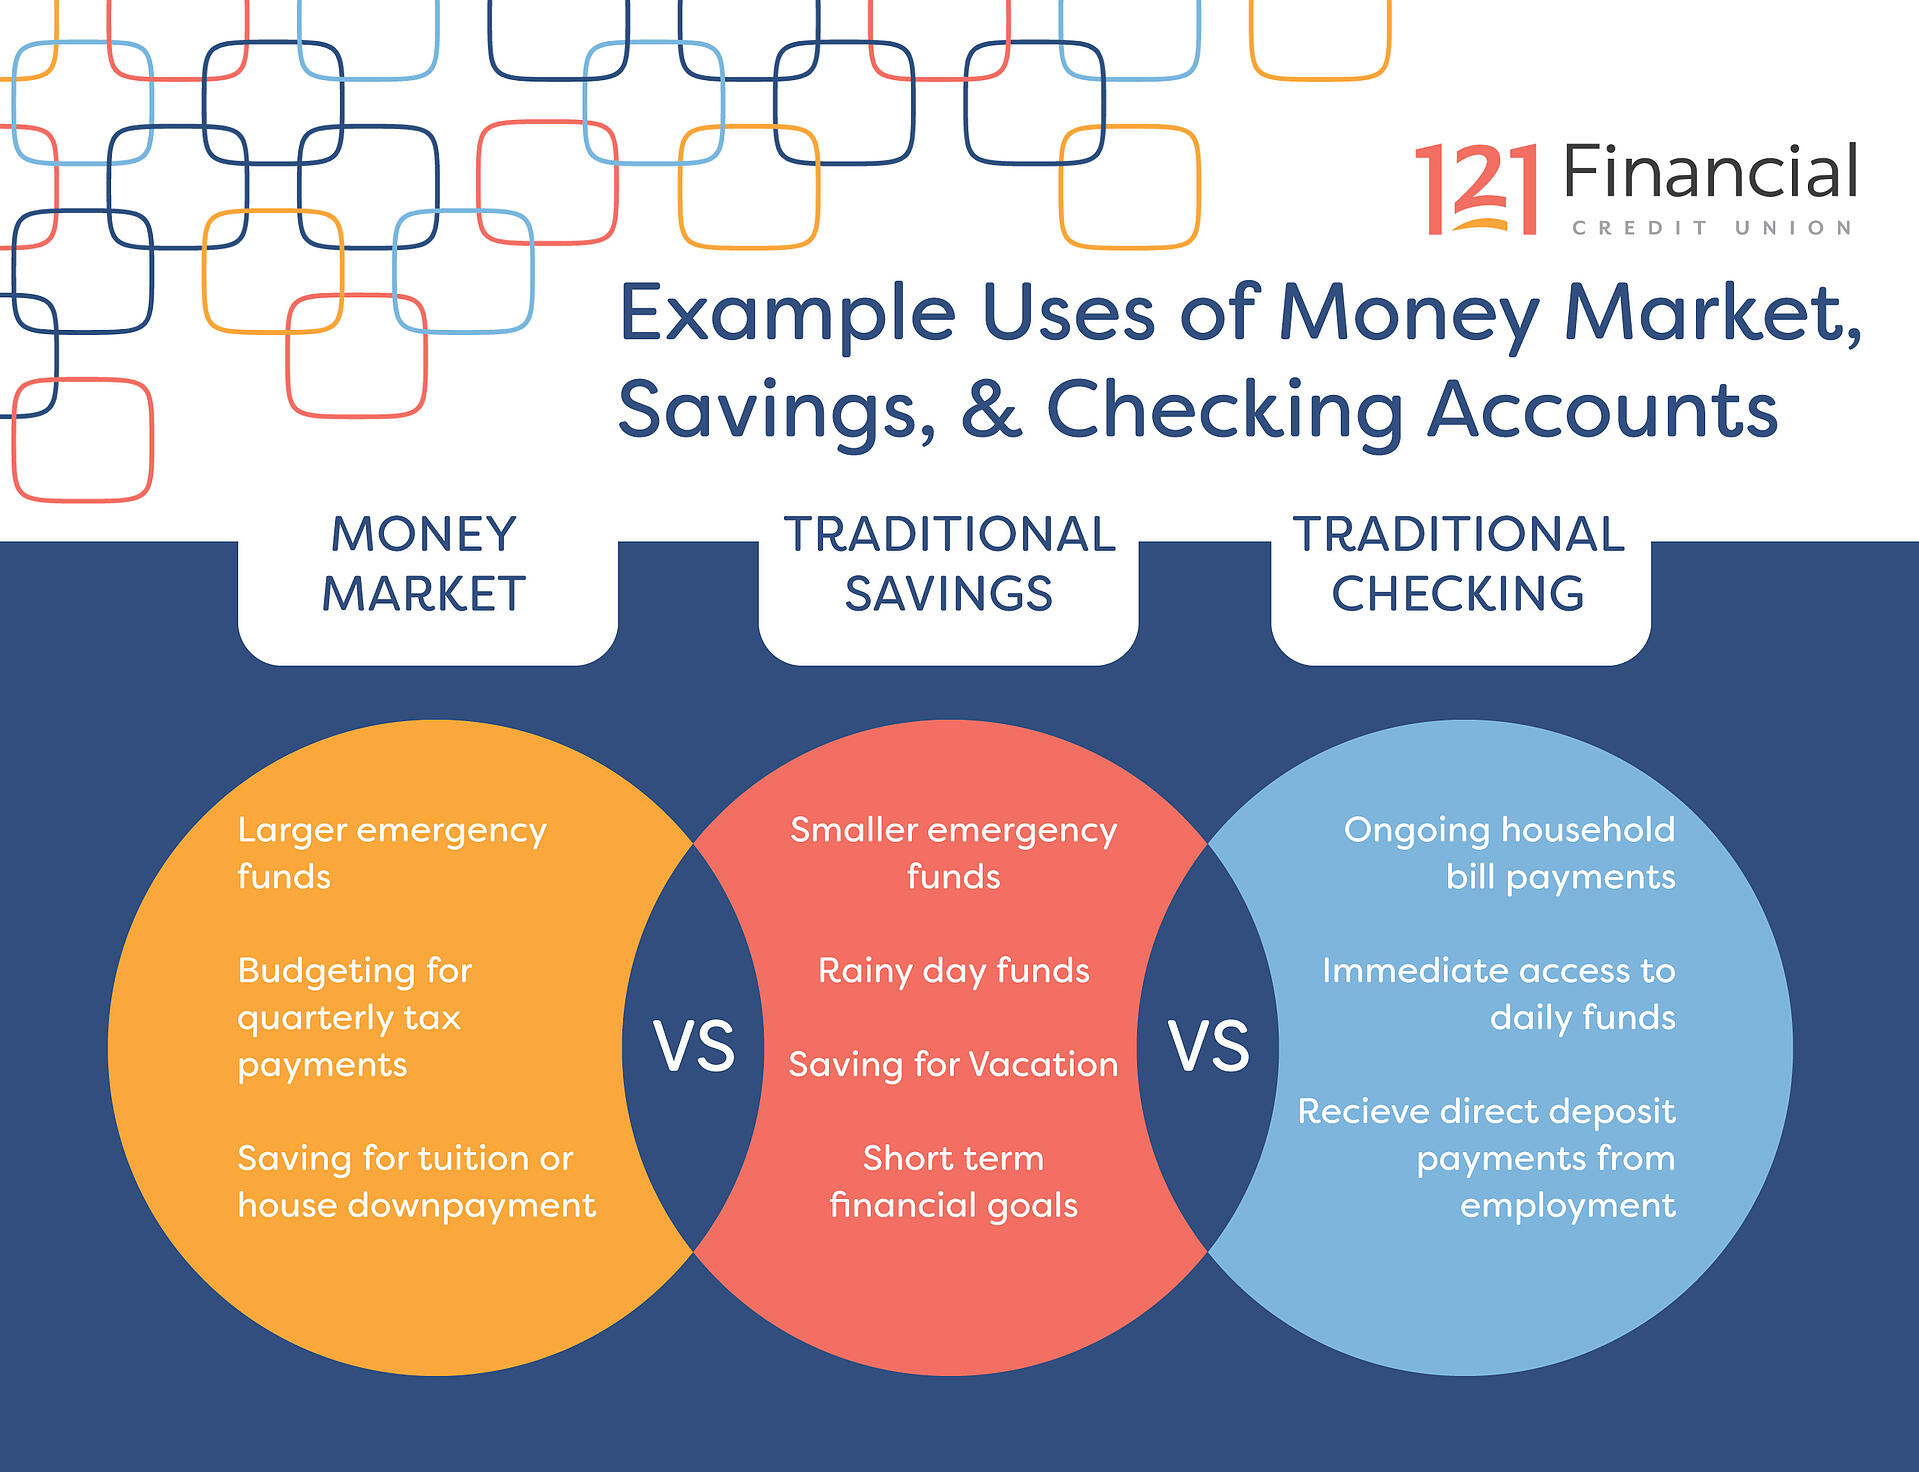 money-market-savings-checking-example-uses